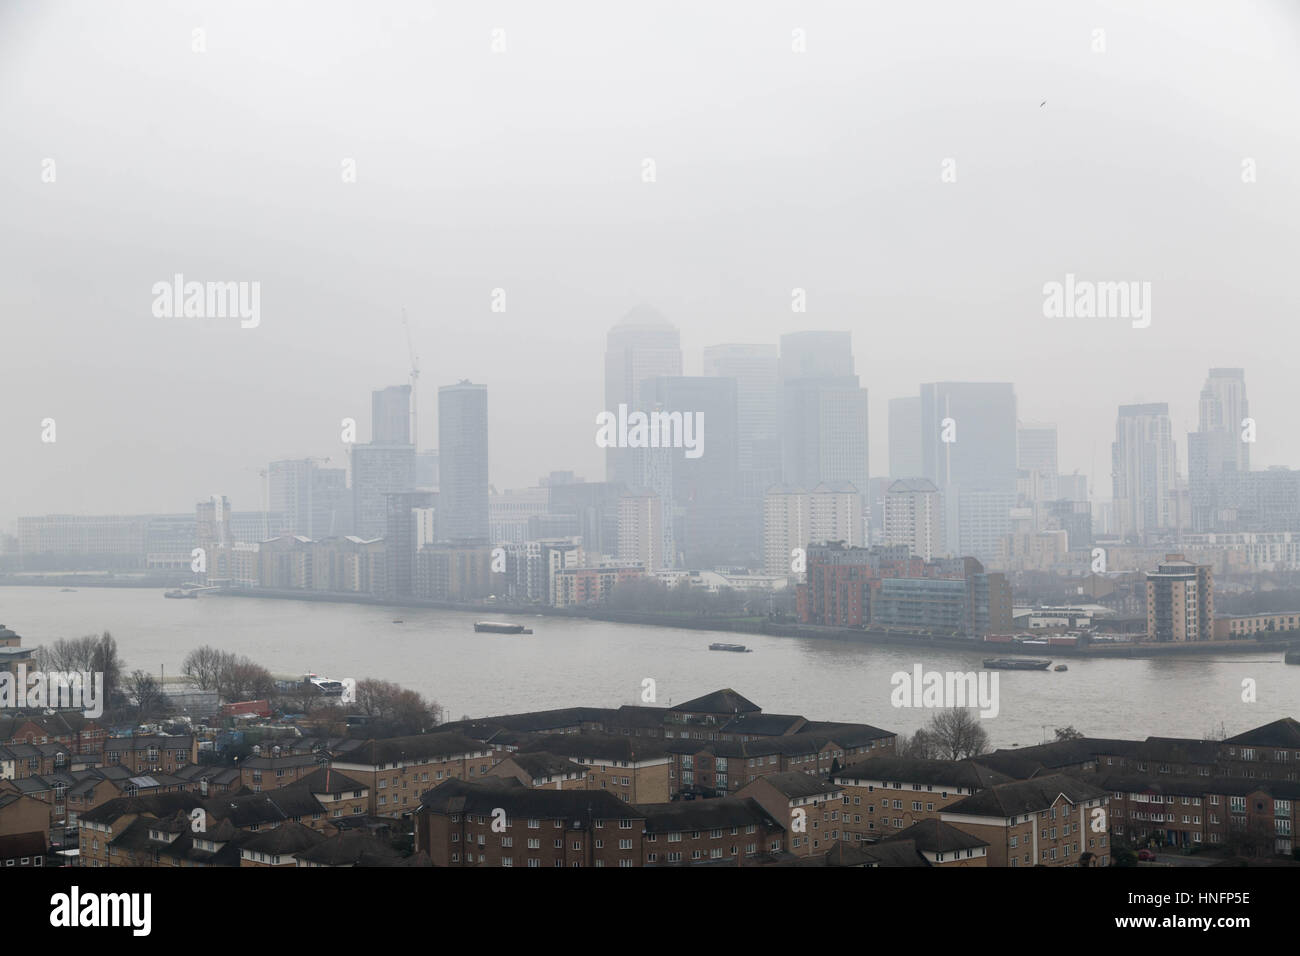 London, UK. 12th February, 2017. UK Weather: Fog over London and Canary Wharf business park buildings © Guy Corbishley/Alamy Stock Photo